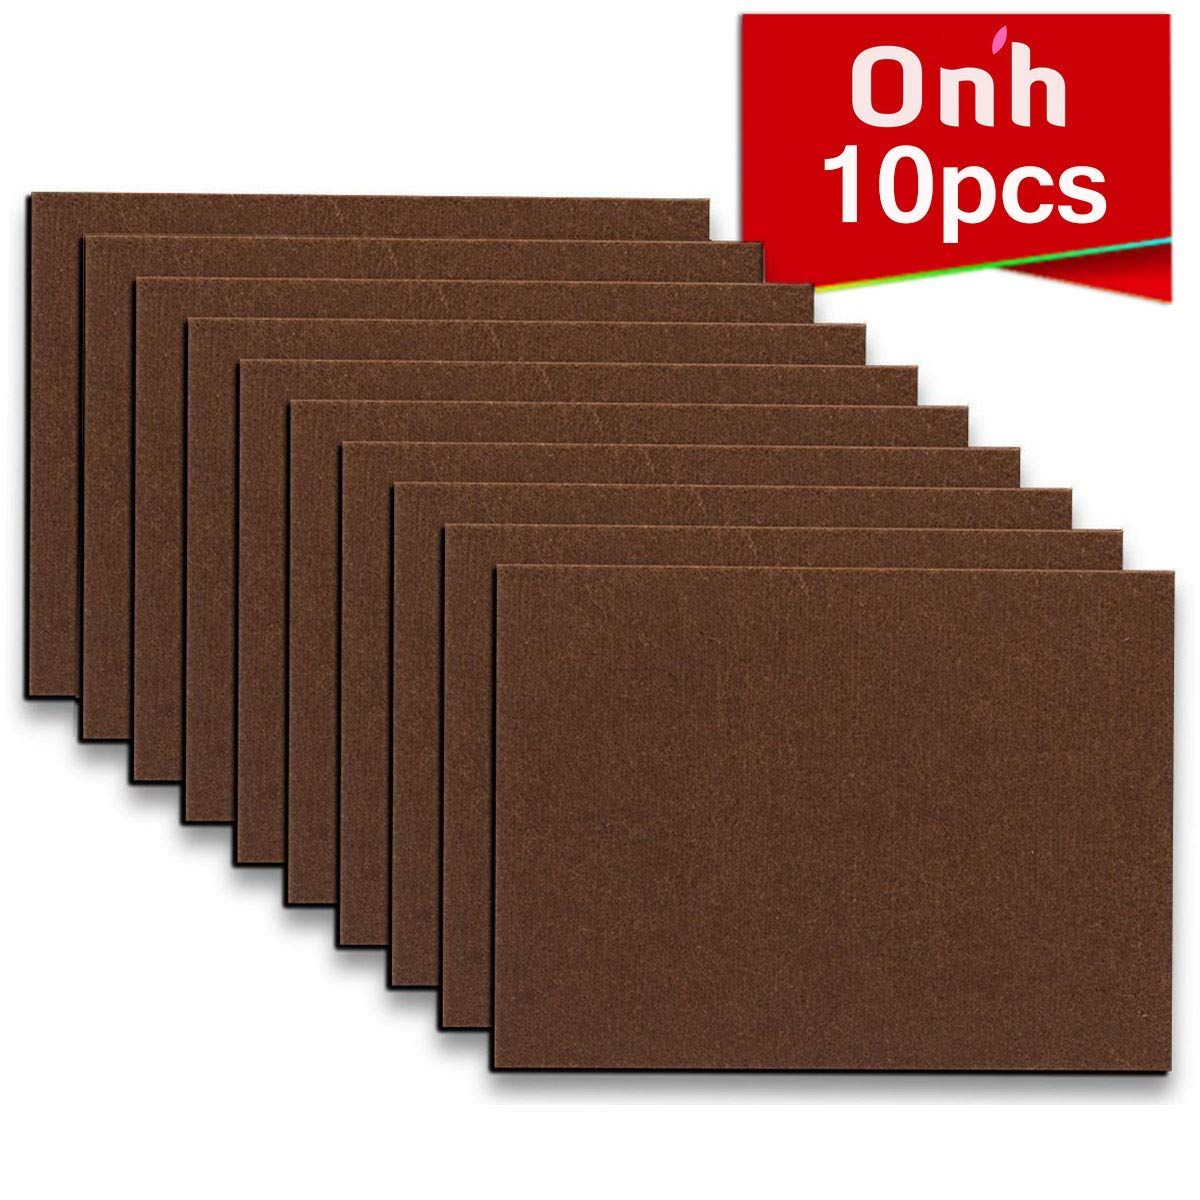 Furniture Pads 10 Pack On H Self